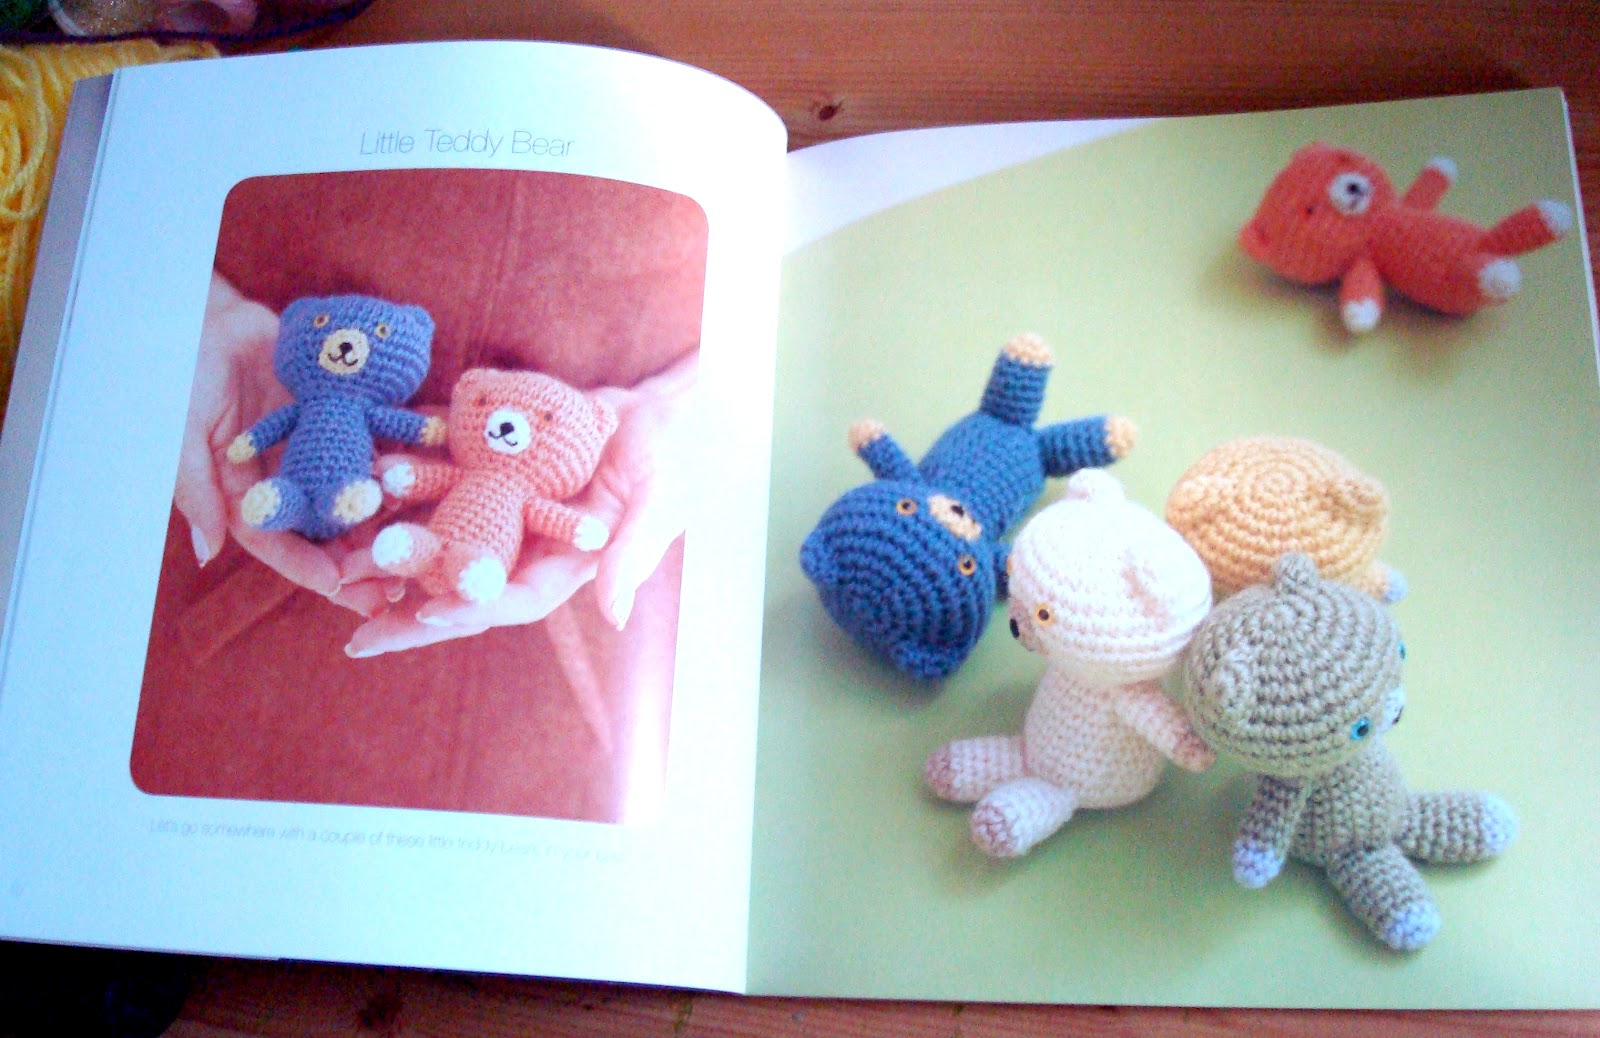 The string empire book review kyuuto japanese crafts for Japan craft